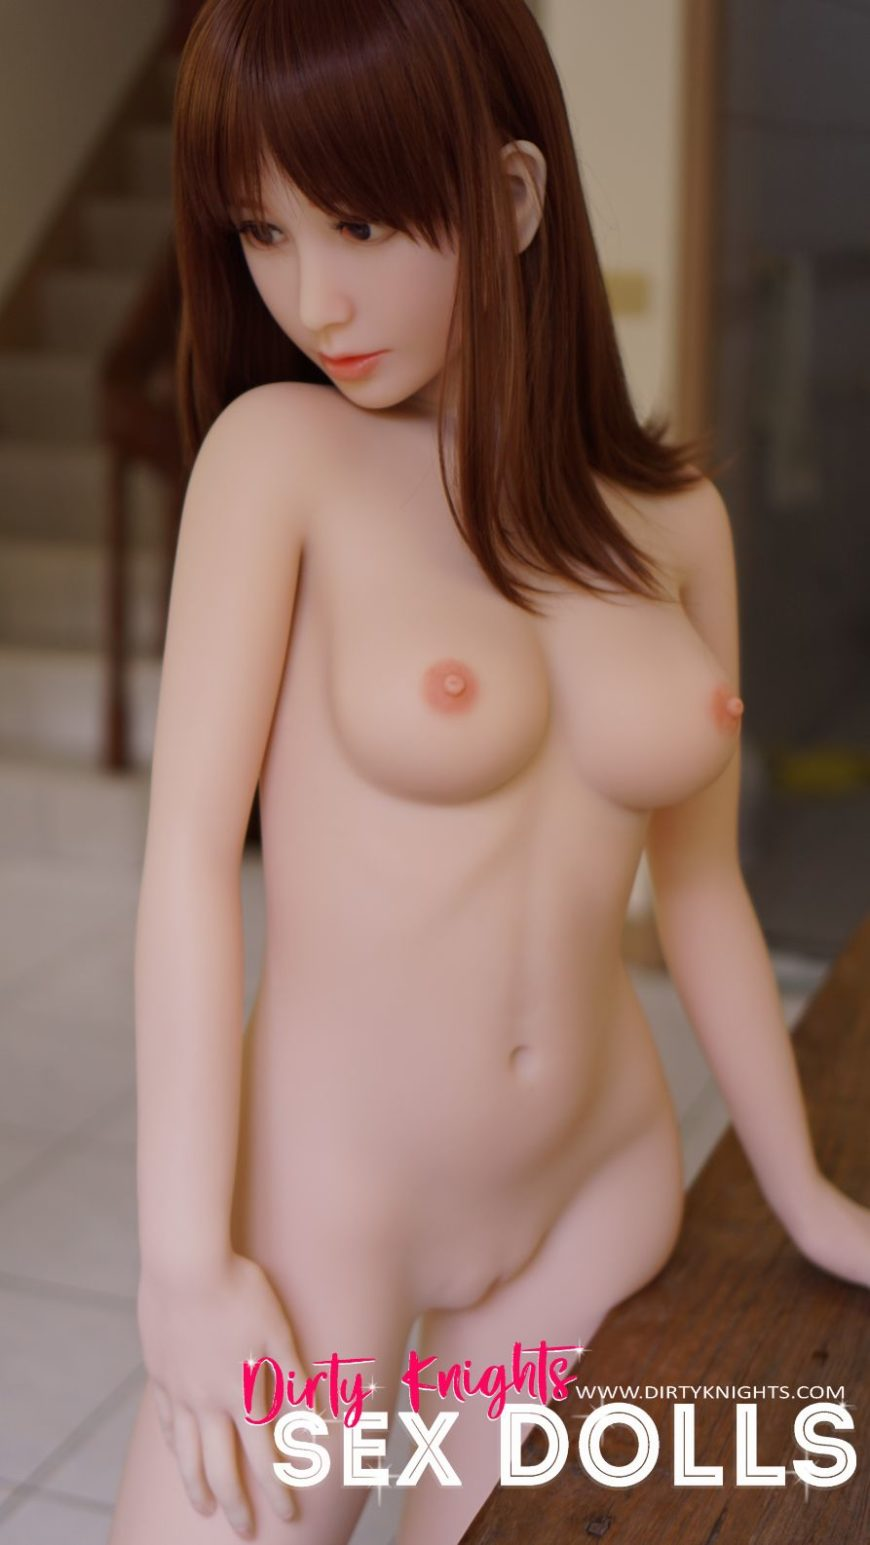 Sasa Sex Doll posing nude for Dirty Knights Sex Dolls (36)